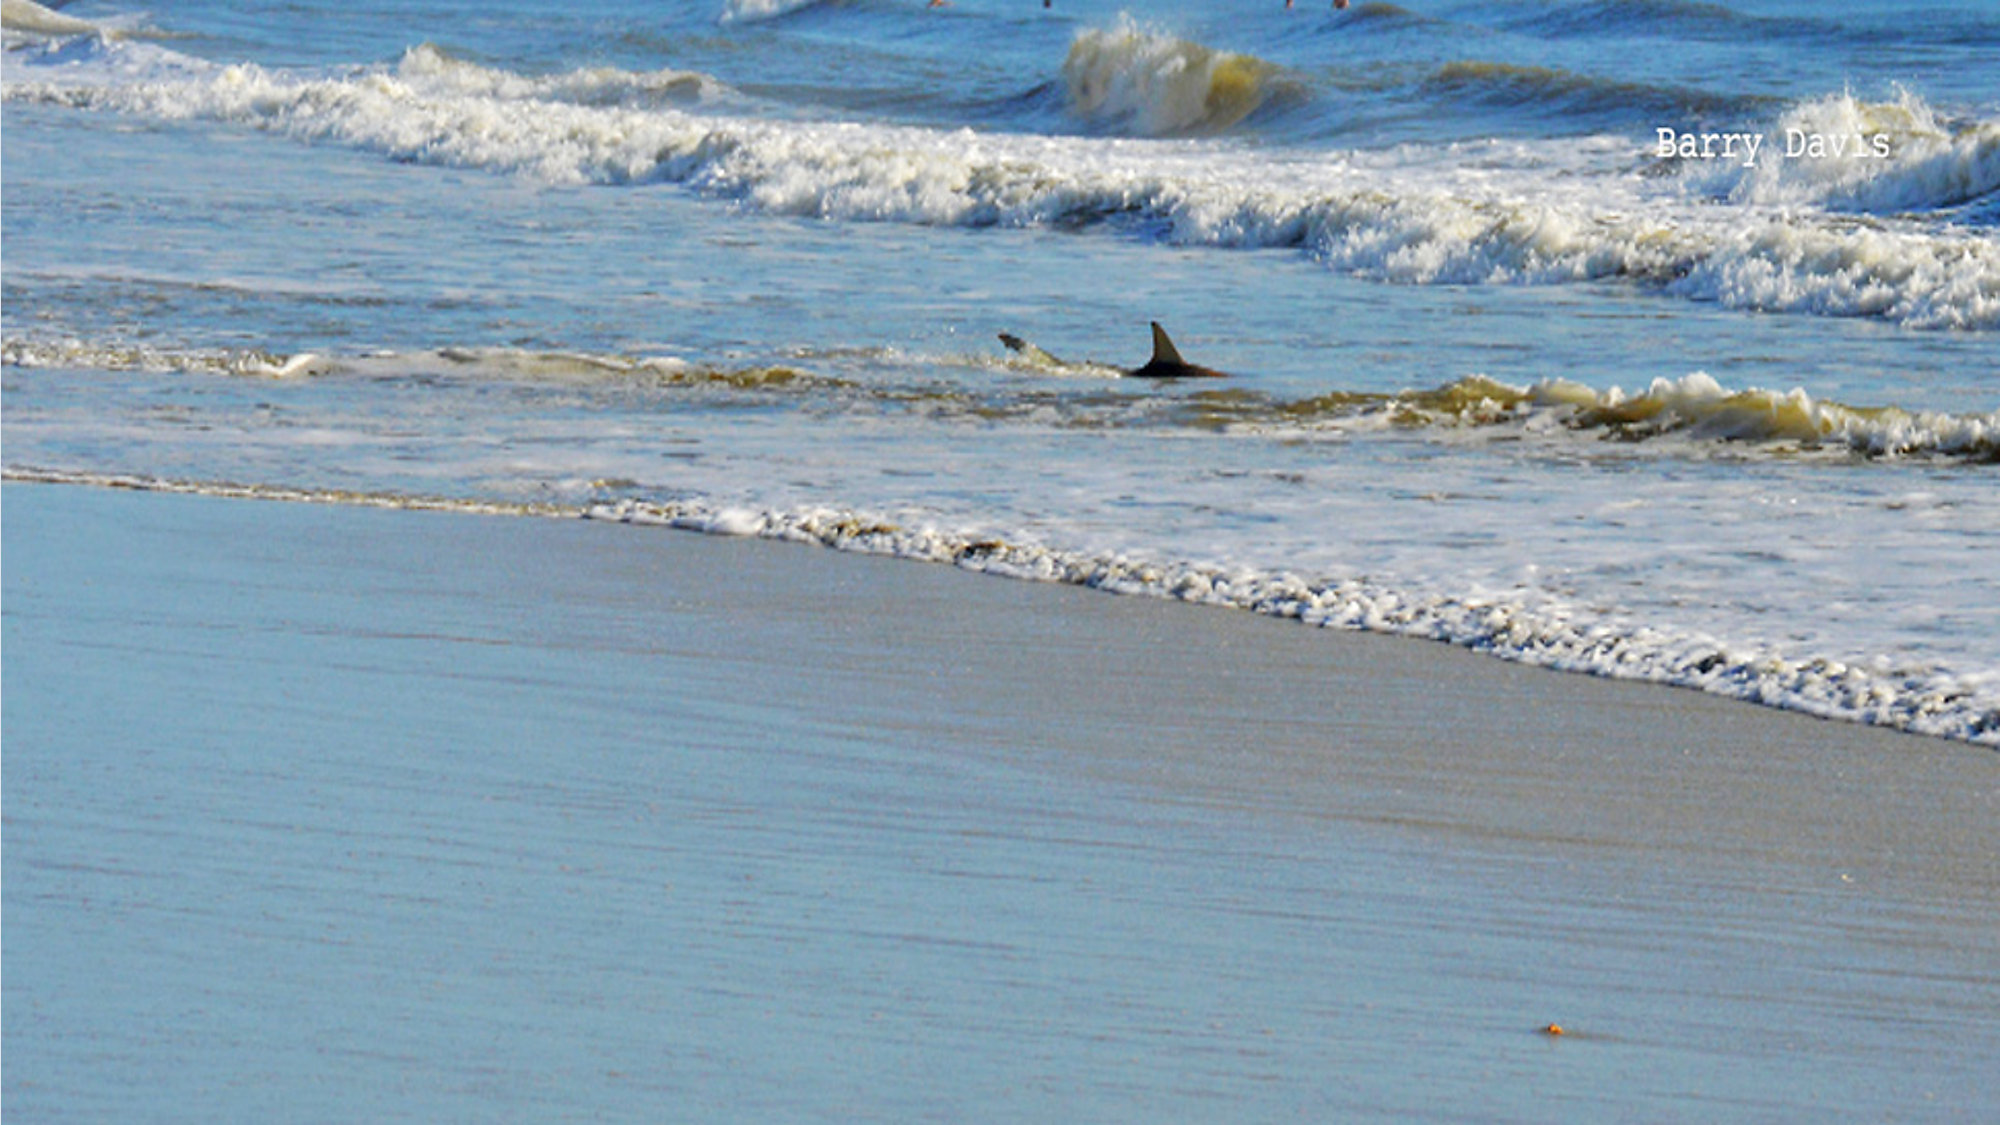 3 Shark Bites Reported At New Smyrna Beach In Past 2 Weeks